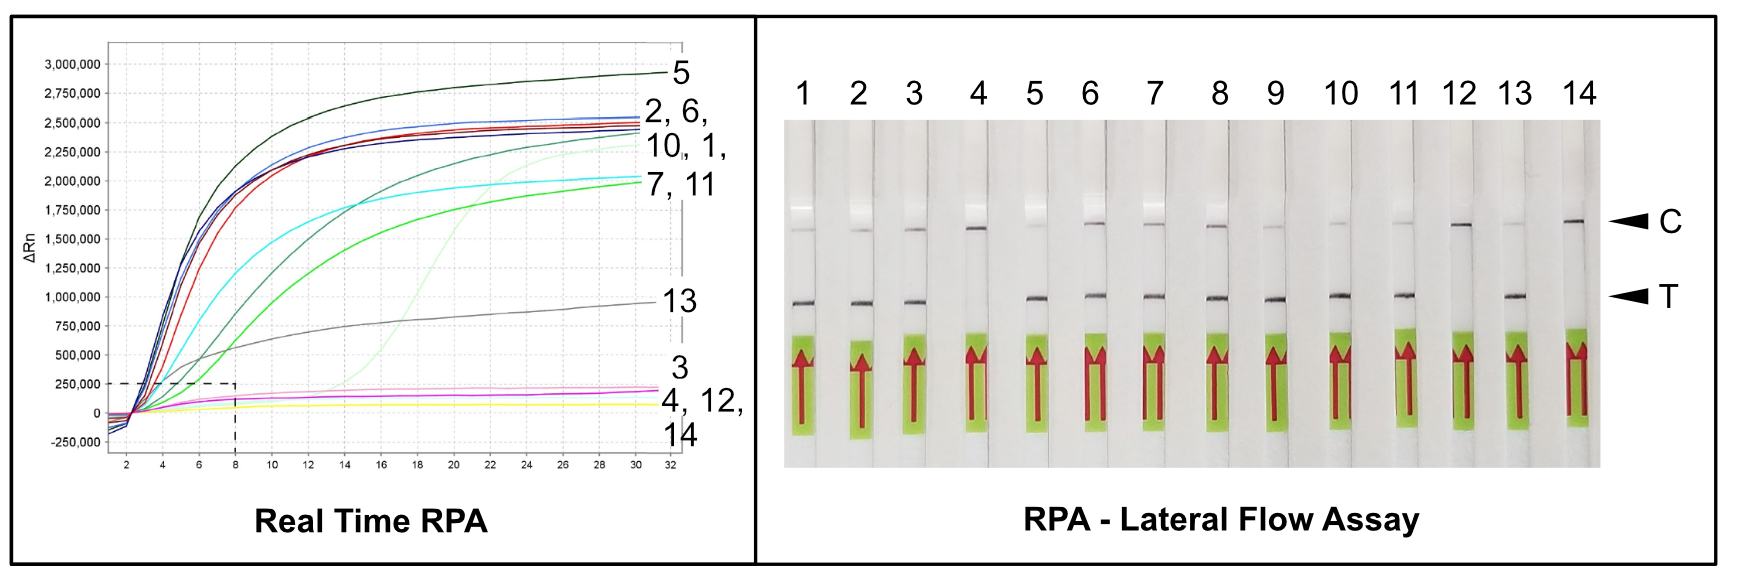 RPA-Lateral Flow Assay - Detection of plant pathogen M. hapla